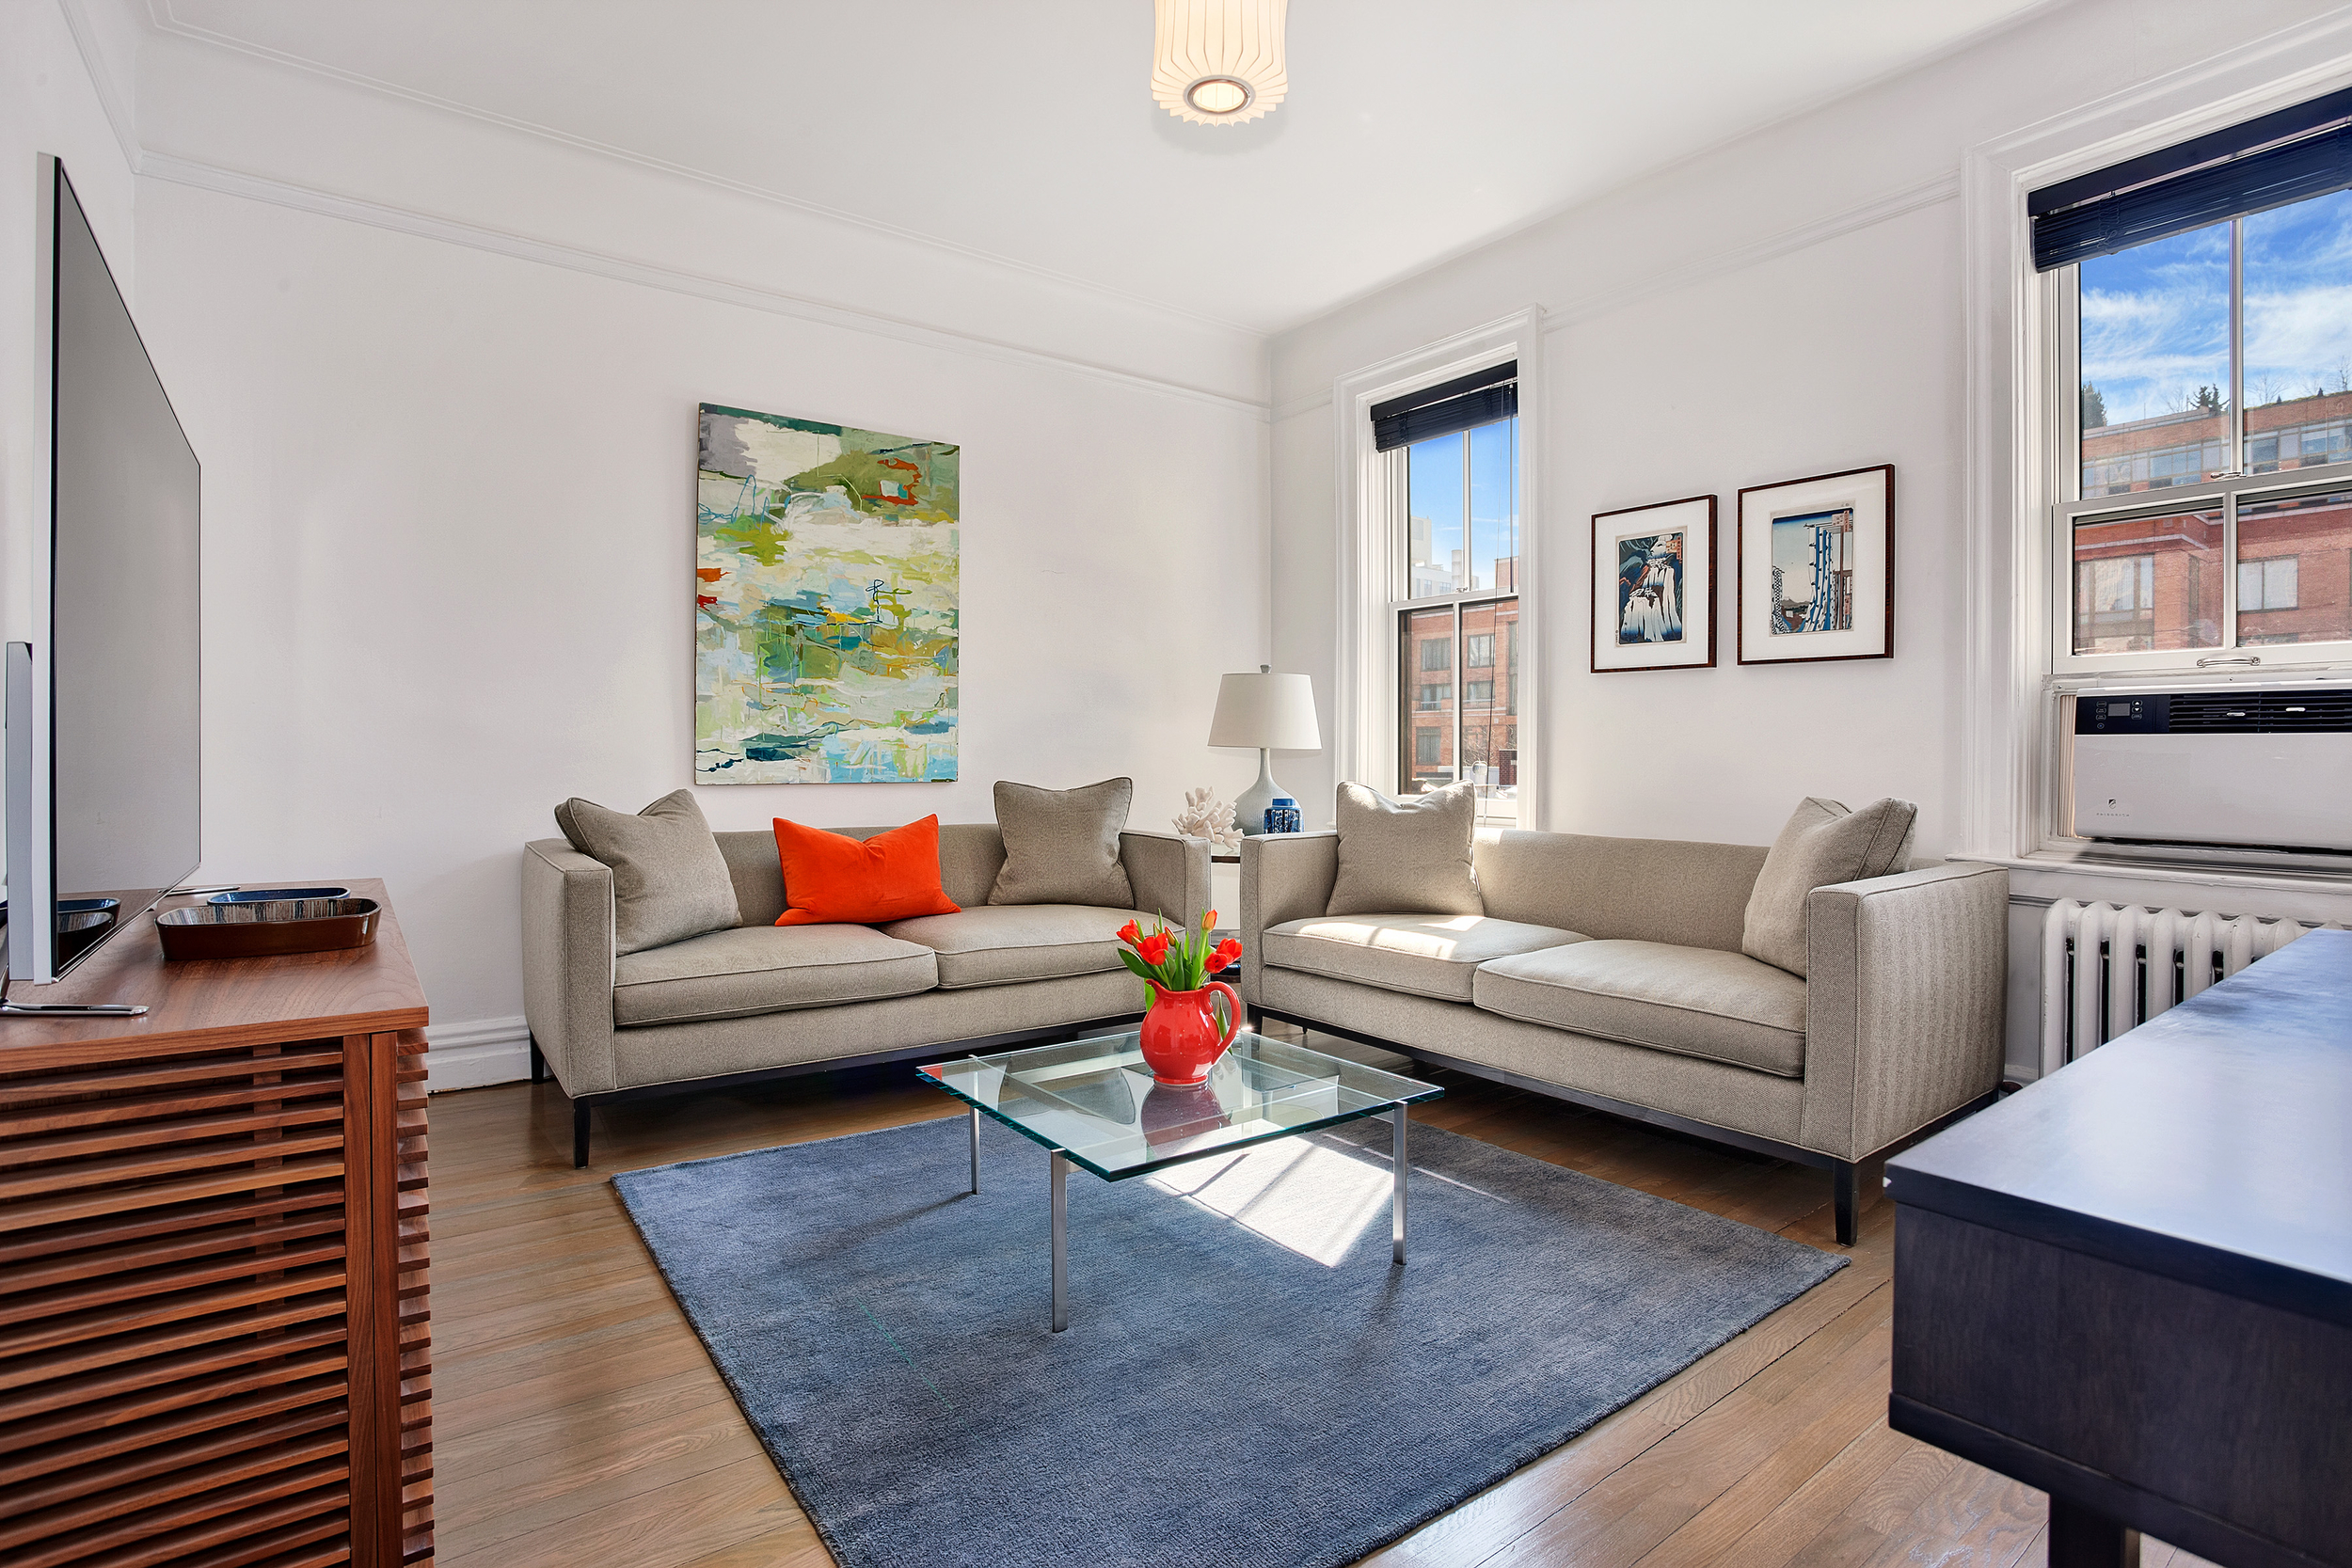 130 West 16th St #54  |  $950.000